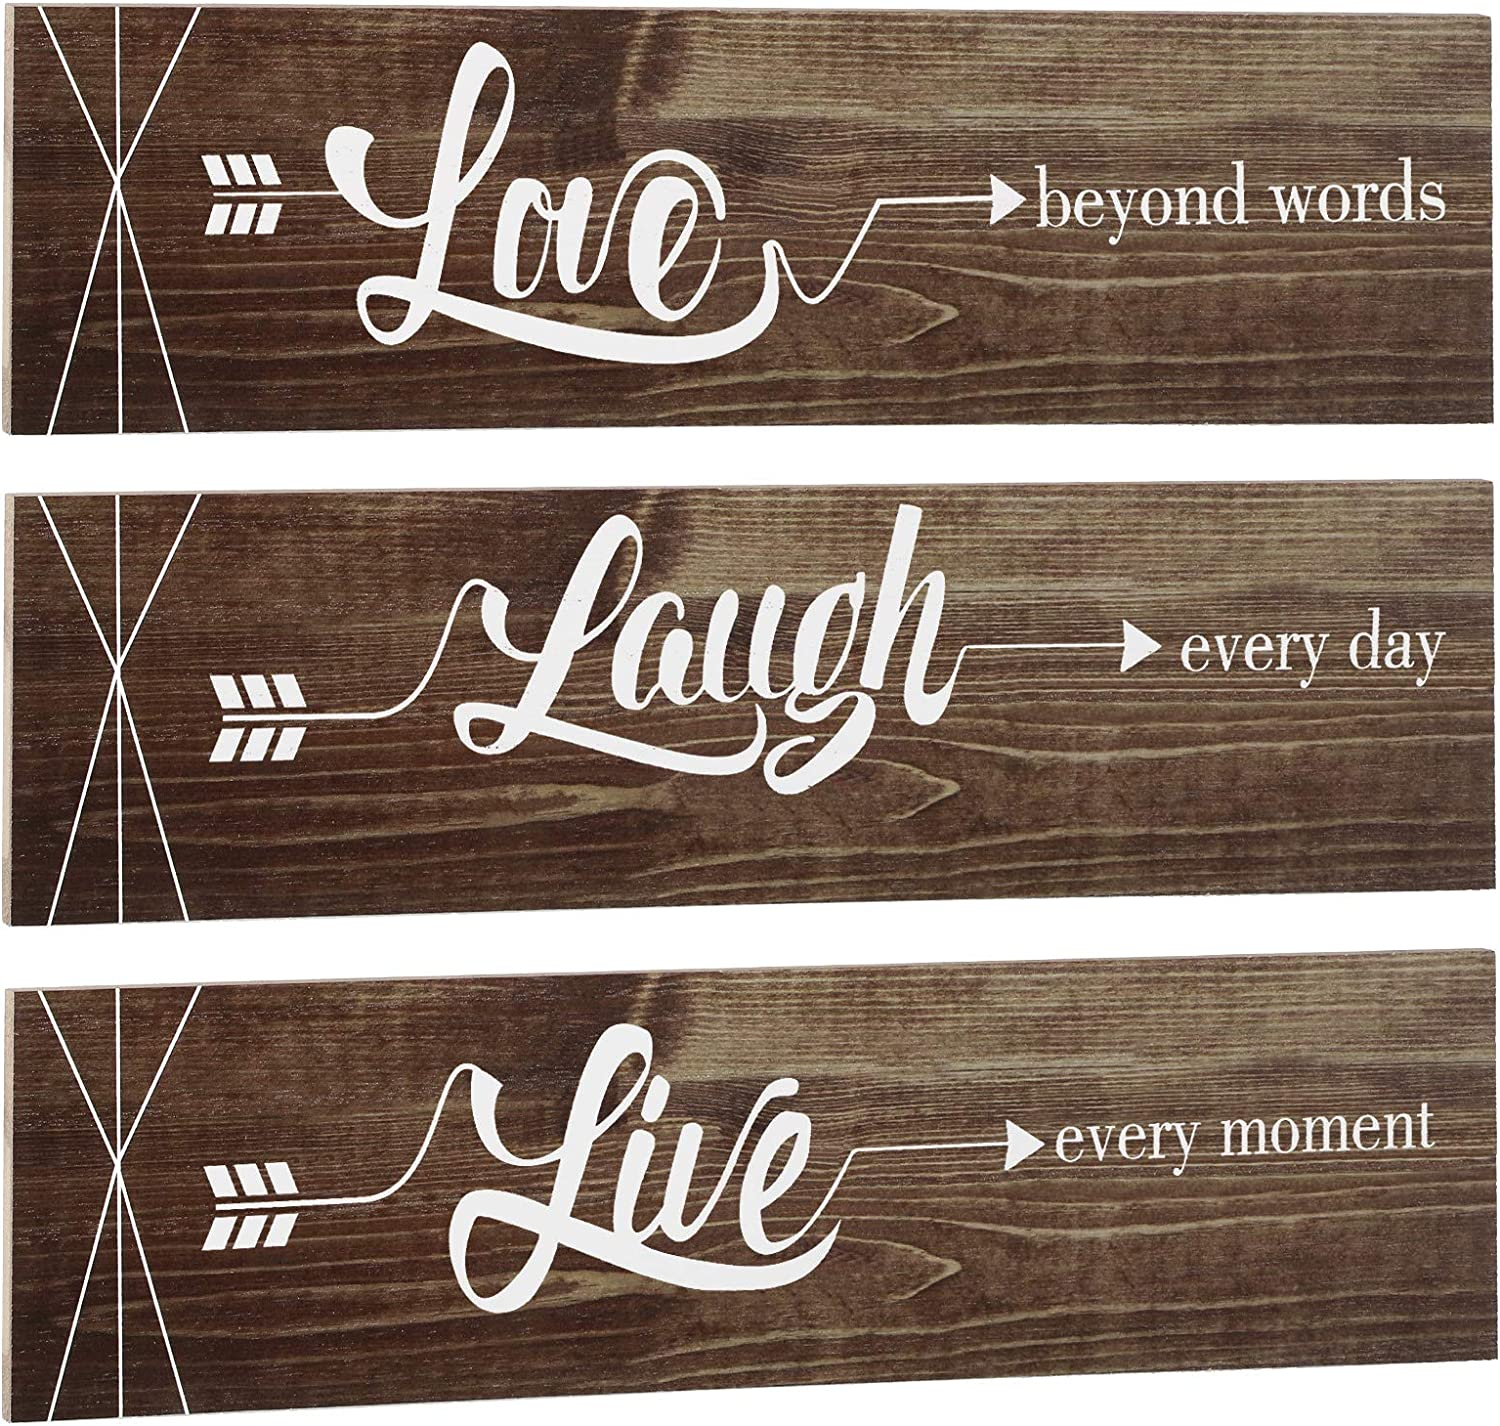 Jetec 3 Pieces Rustic Wood Arrow Sign Wall Decor Home Family Love Live Sign, Farmhouse Wall Mount Decoration for Home Office Wedding Kitchen and Living Room, 12 x 3 x 0.2 Inch (Brown)